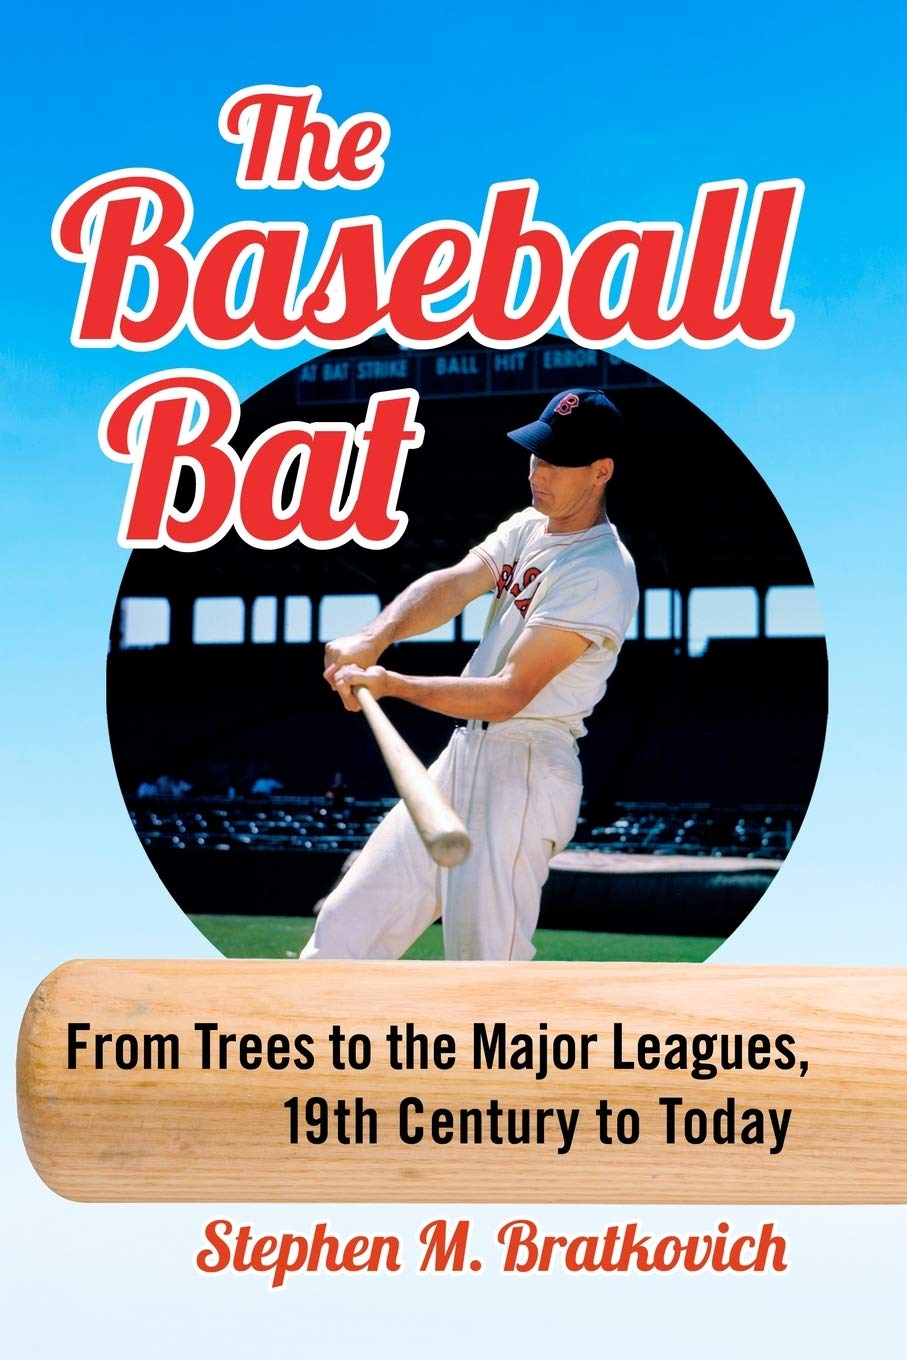 The Baseball Bat: From Trees to the Major Leagues, 19th Century to Today